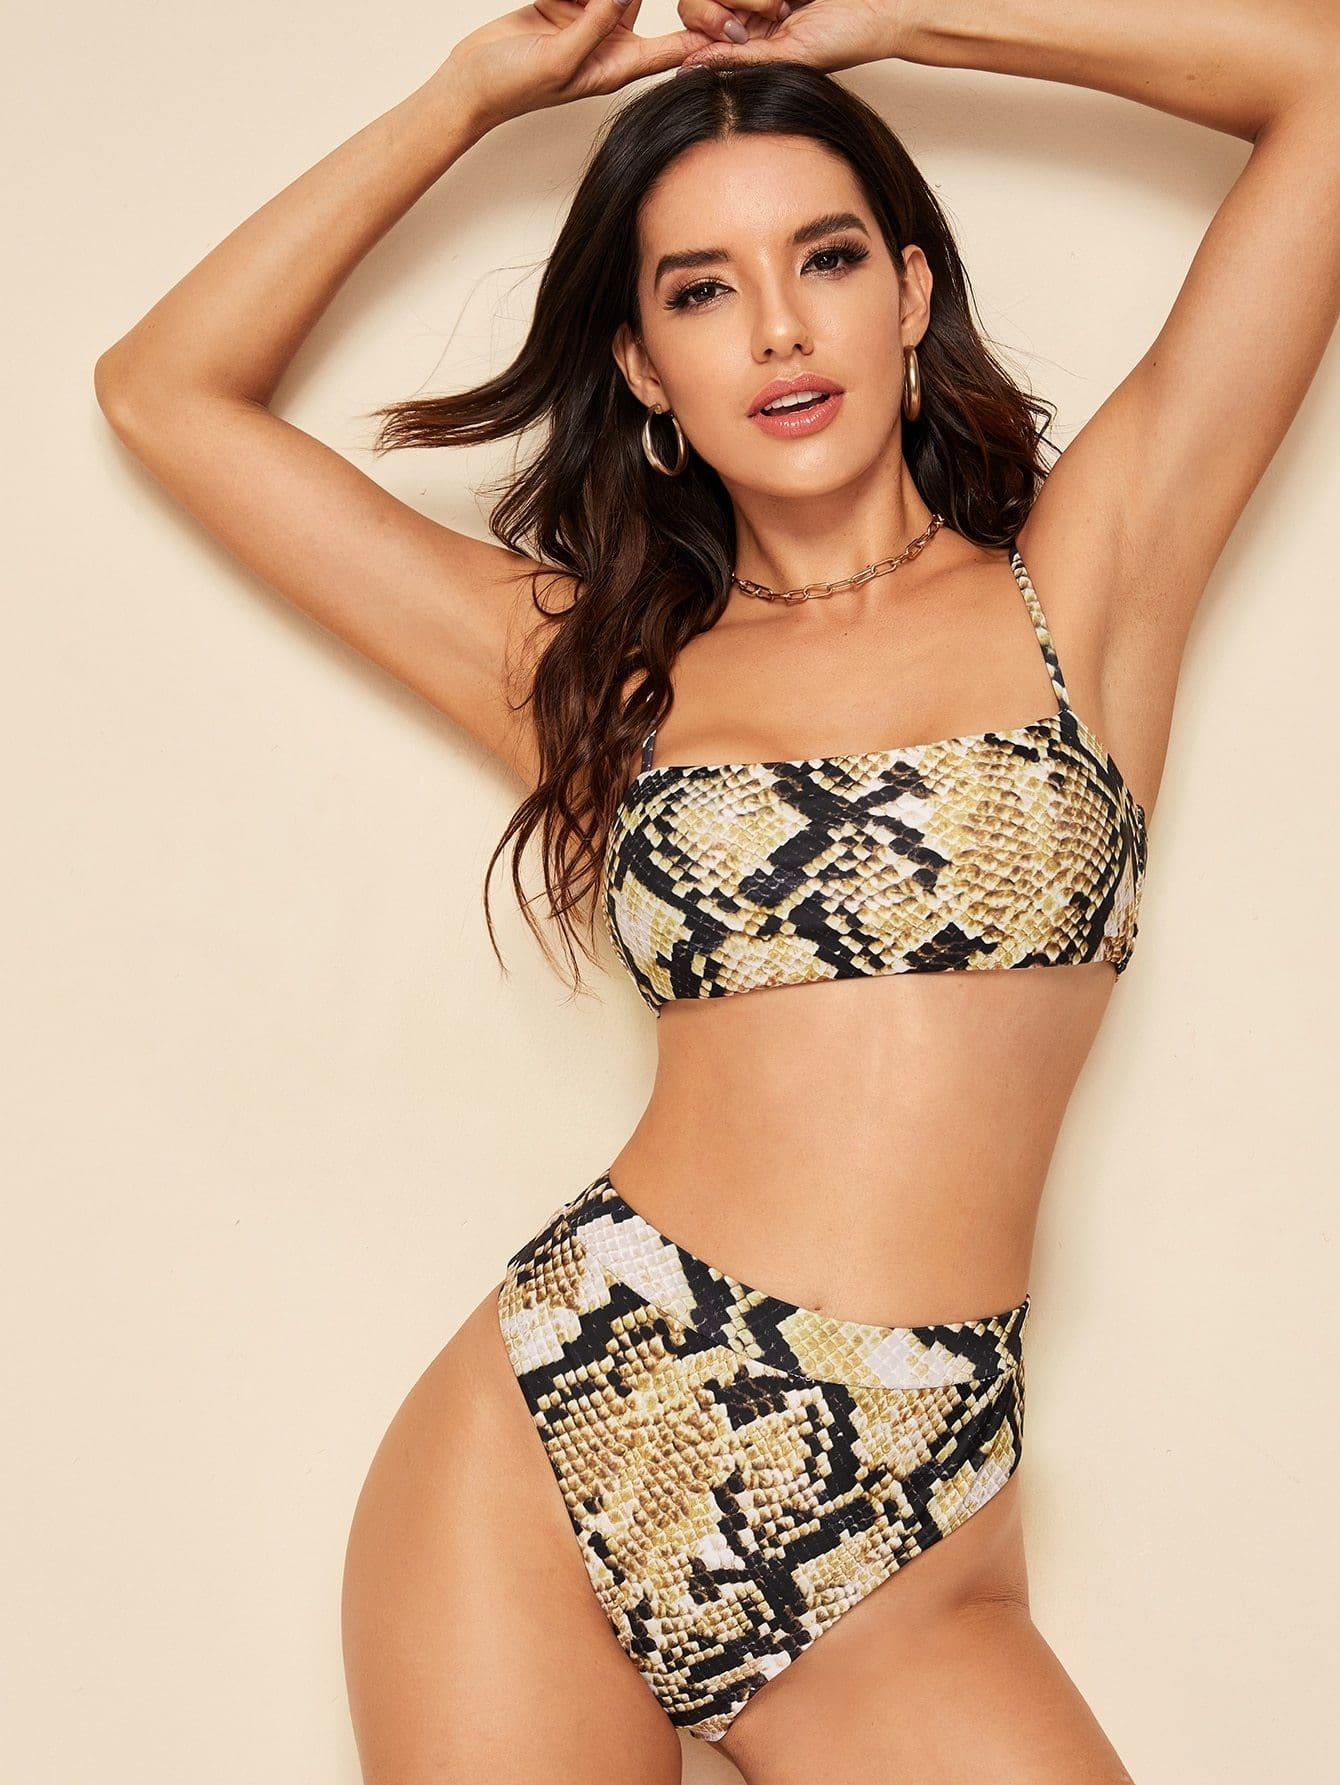 Snakeskin Print Top With High Waist Bikini Set - S - High Waist Swimwear